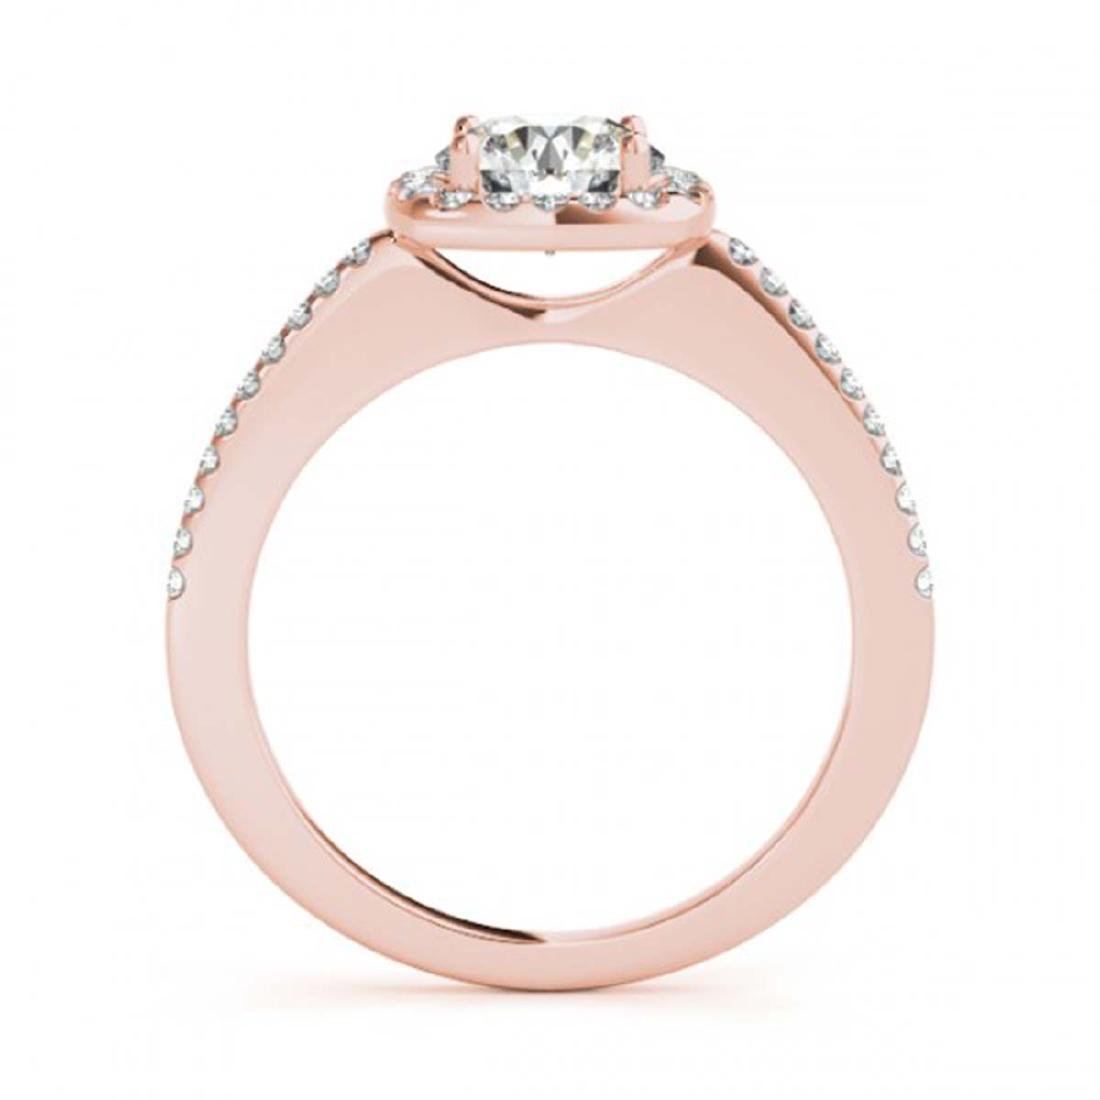 1.25 ctw VS/SI Diamond Solitaire Halo Ring 14K Rose - 2